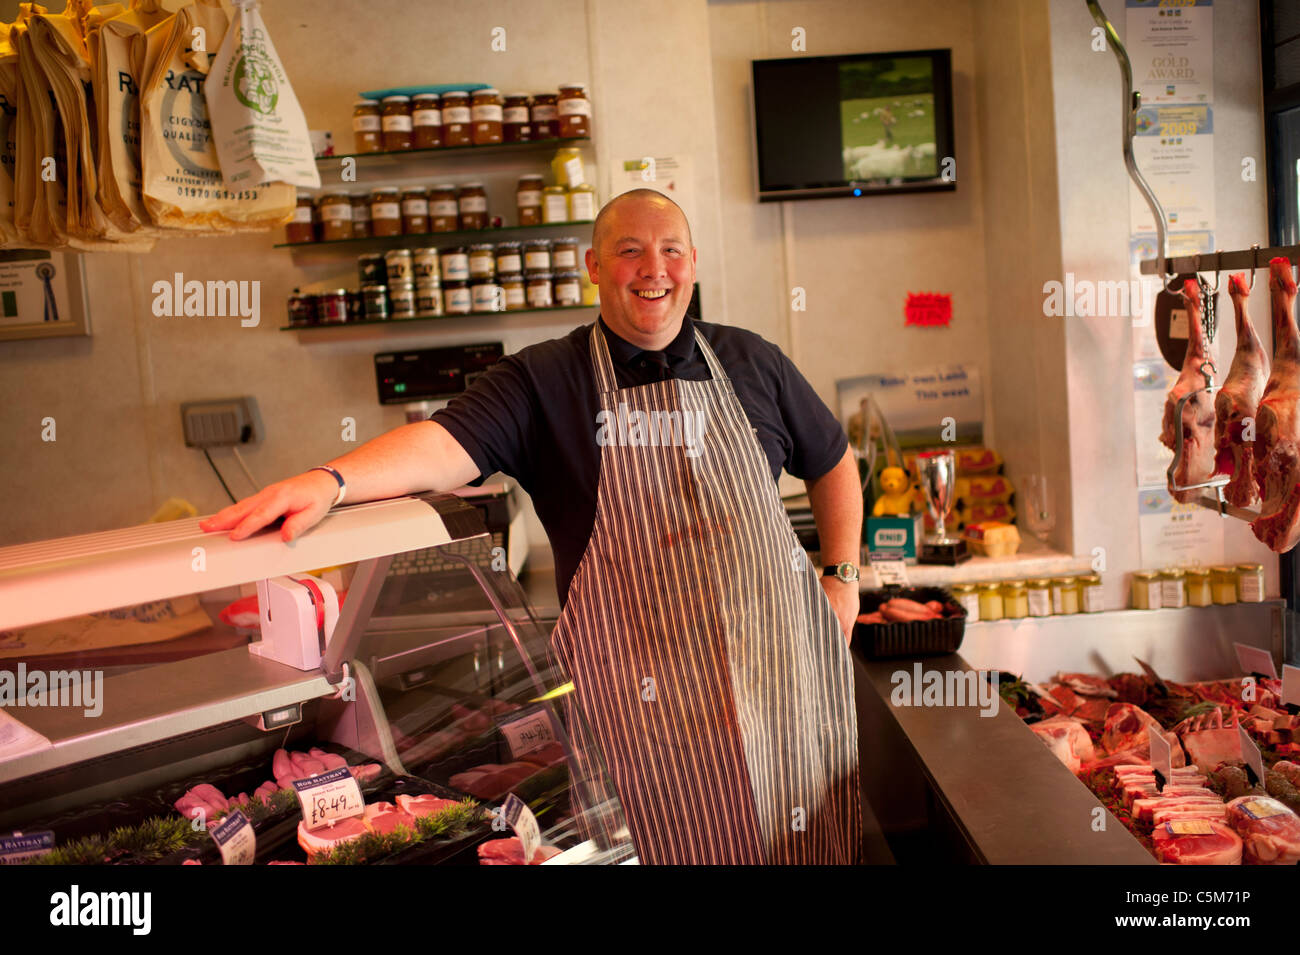 A happy smiling jolly fat Butcher in his shop, Aberystwyth wales UK - Stock Image